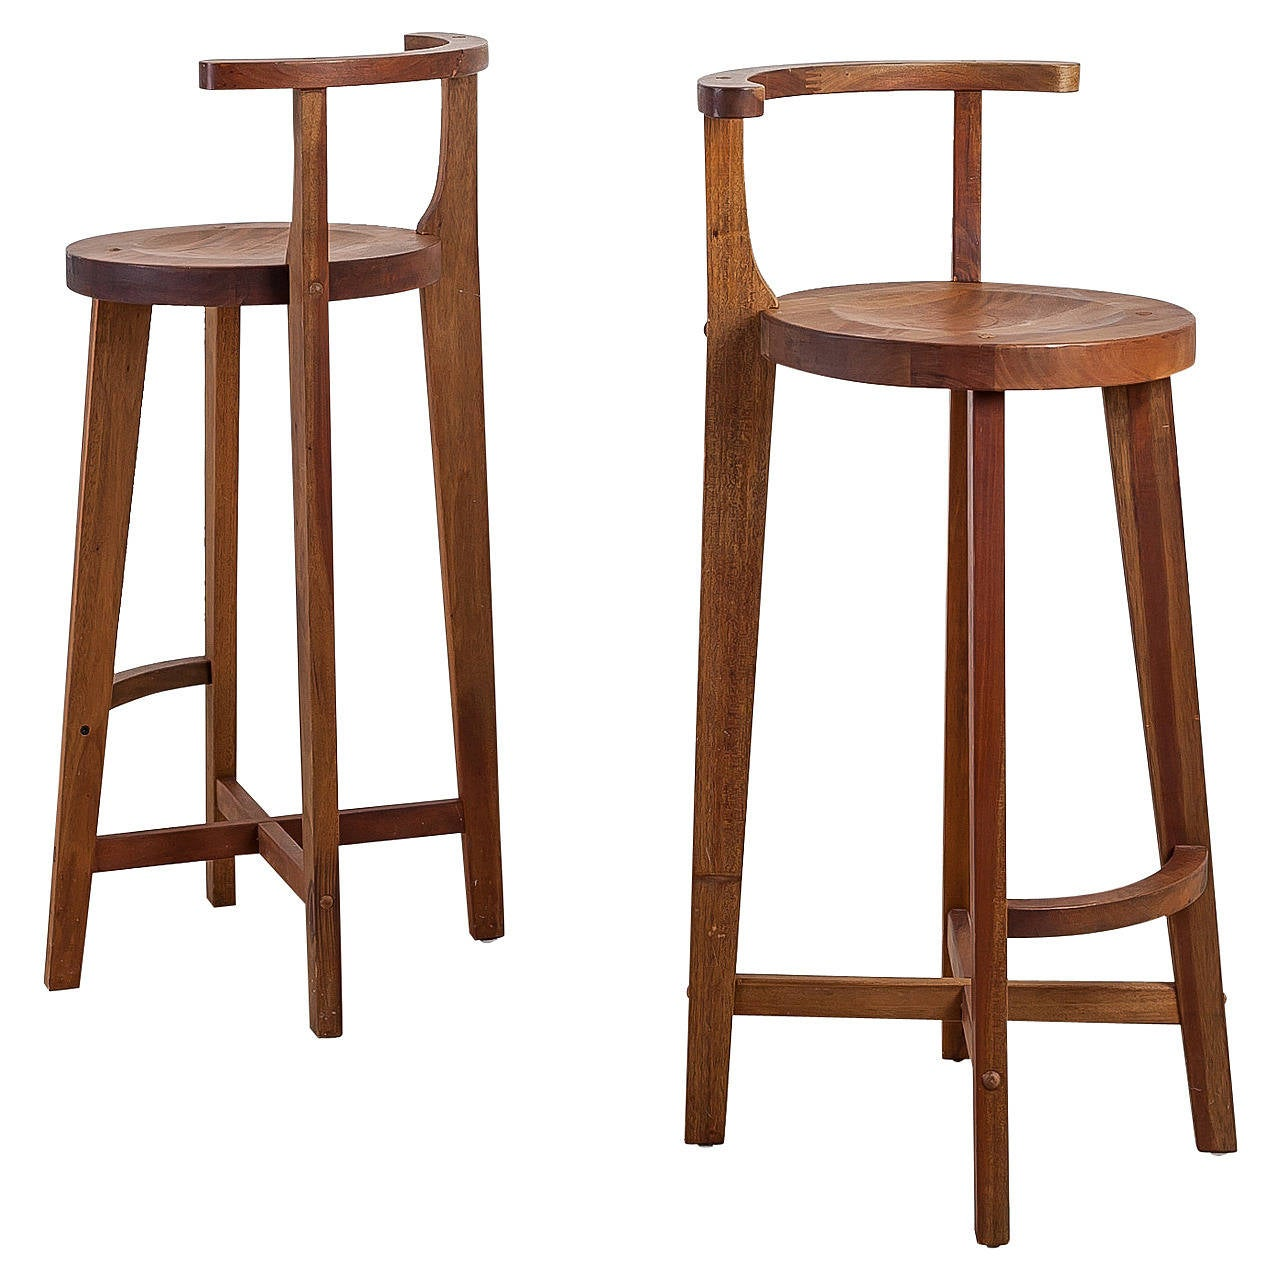 Marvelous photograph of Pair Studio crafted wooden bar stools with rounded back rests at  with #492316 color and 1280x1280 pixels